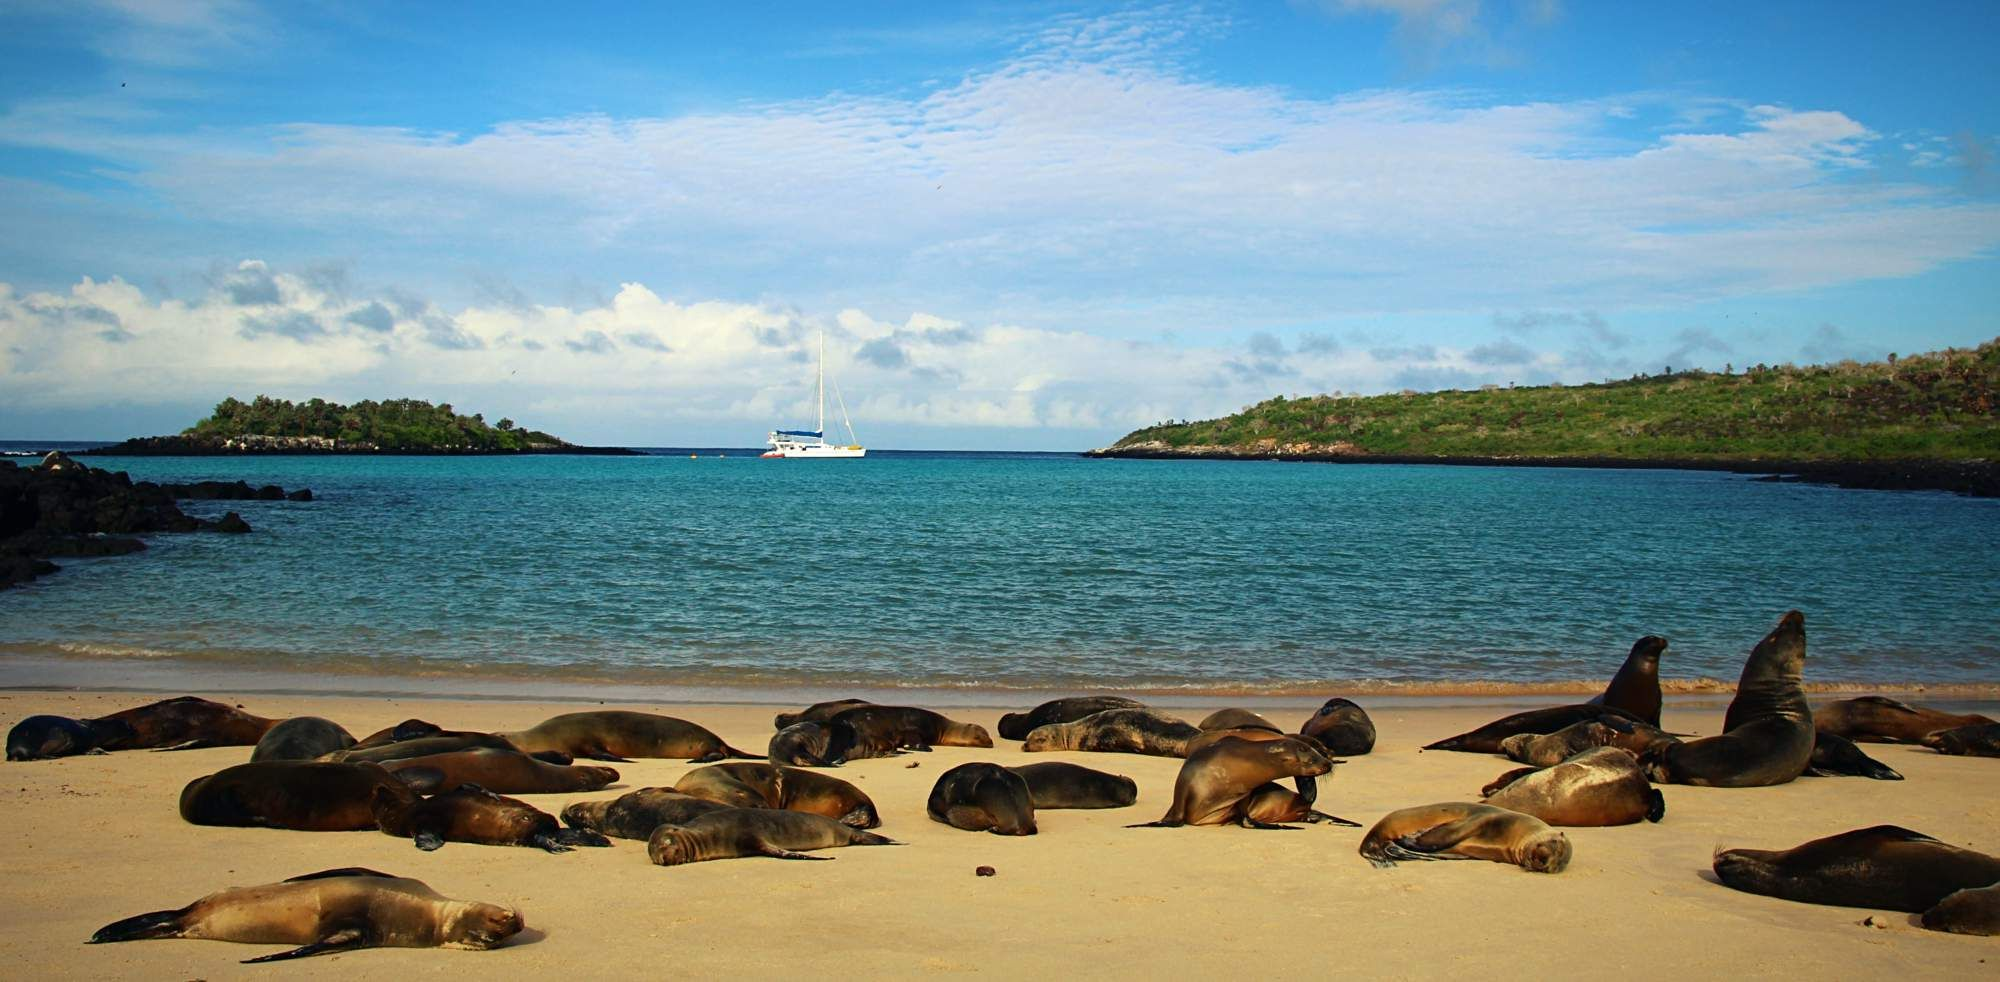 Galápagos - A Tale of Endemic Creatures and Seasickness